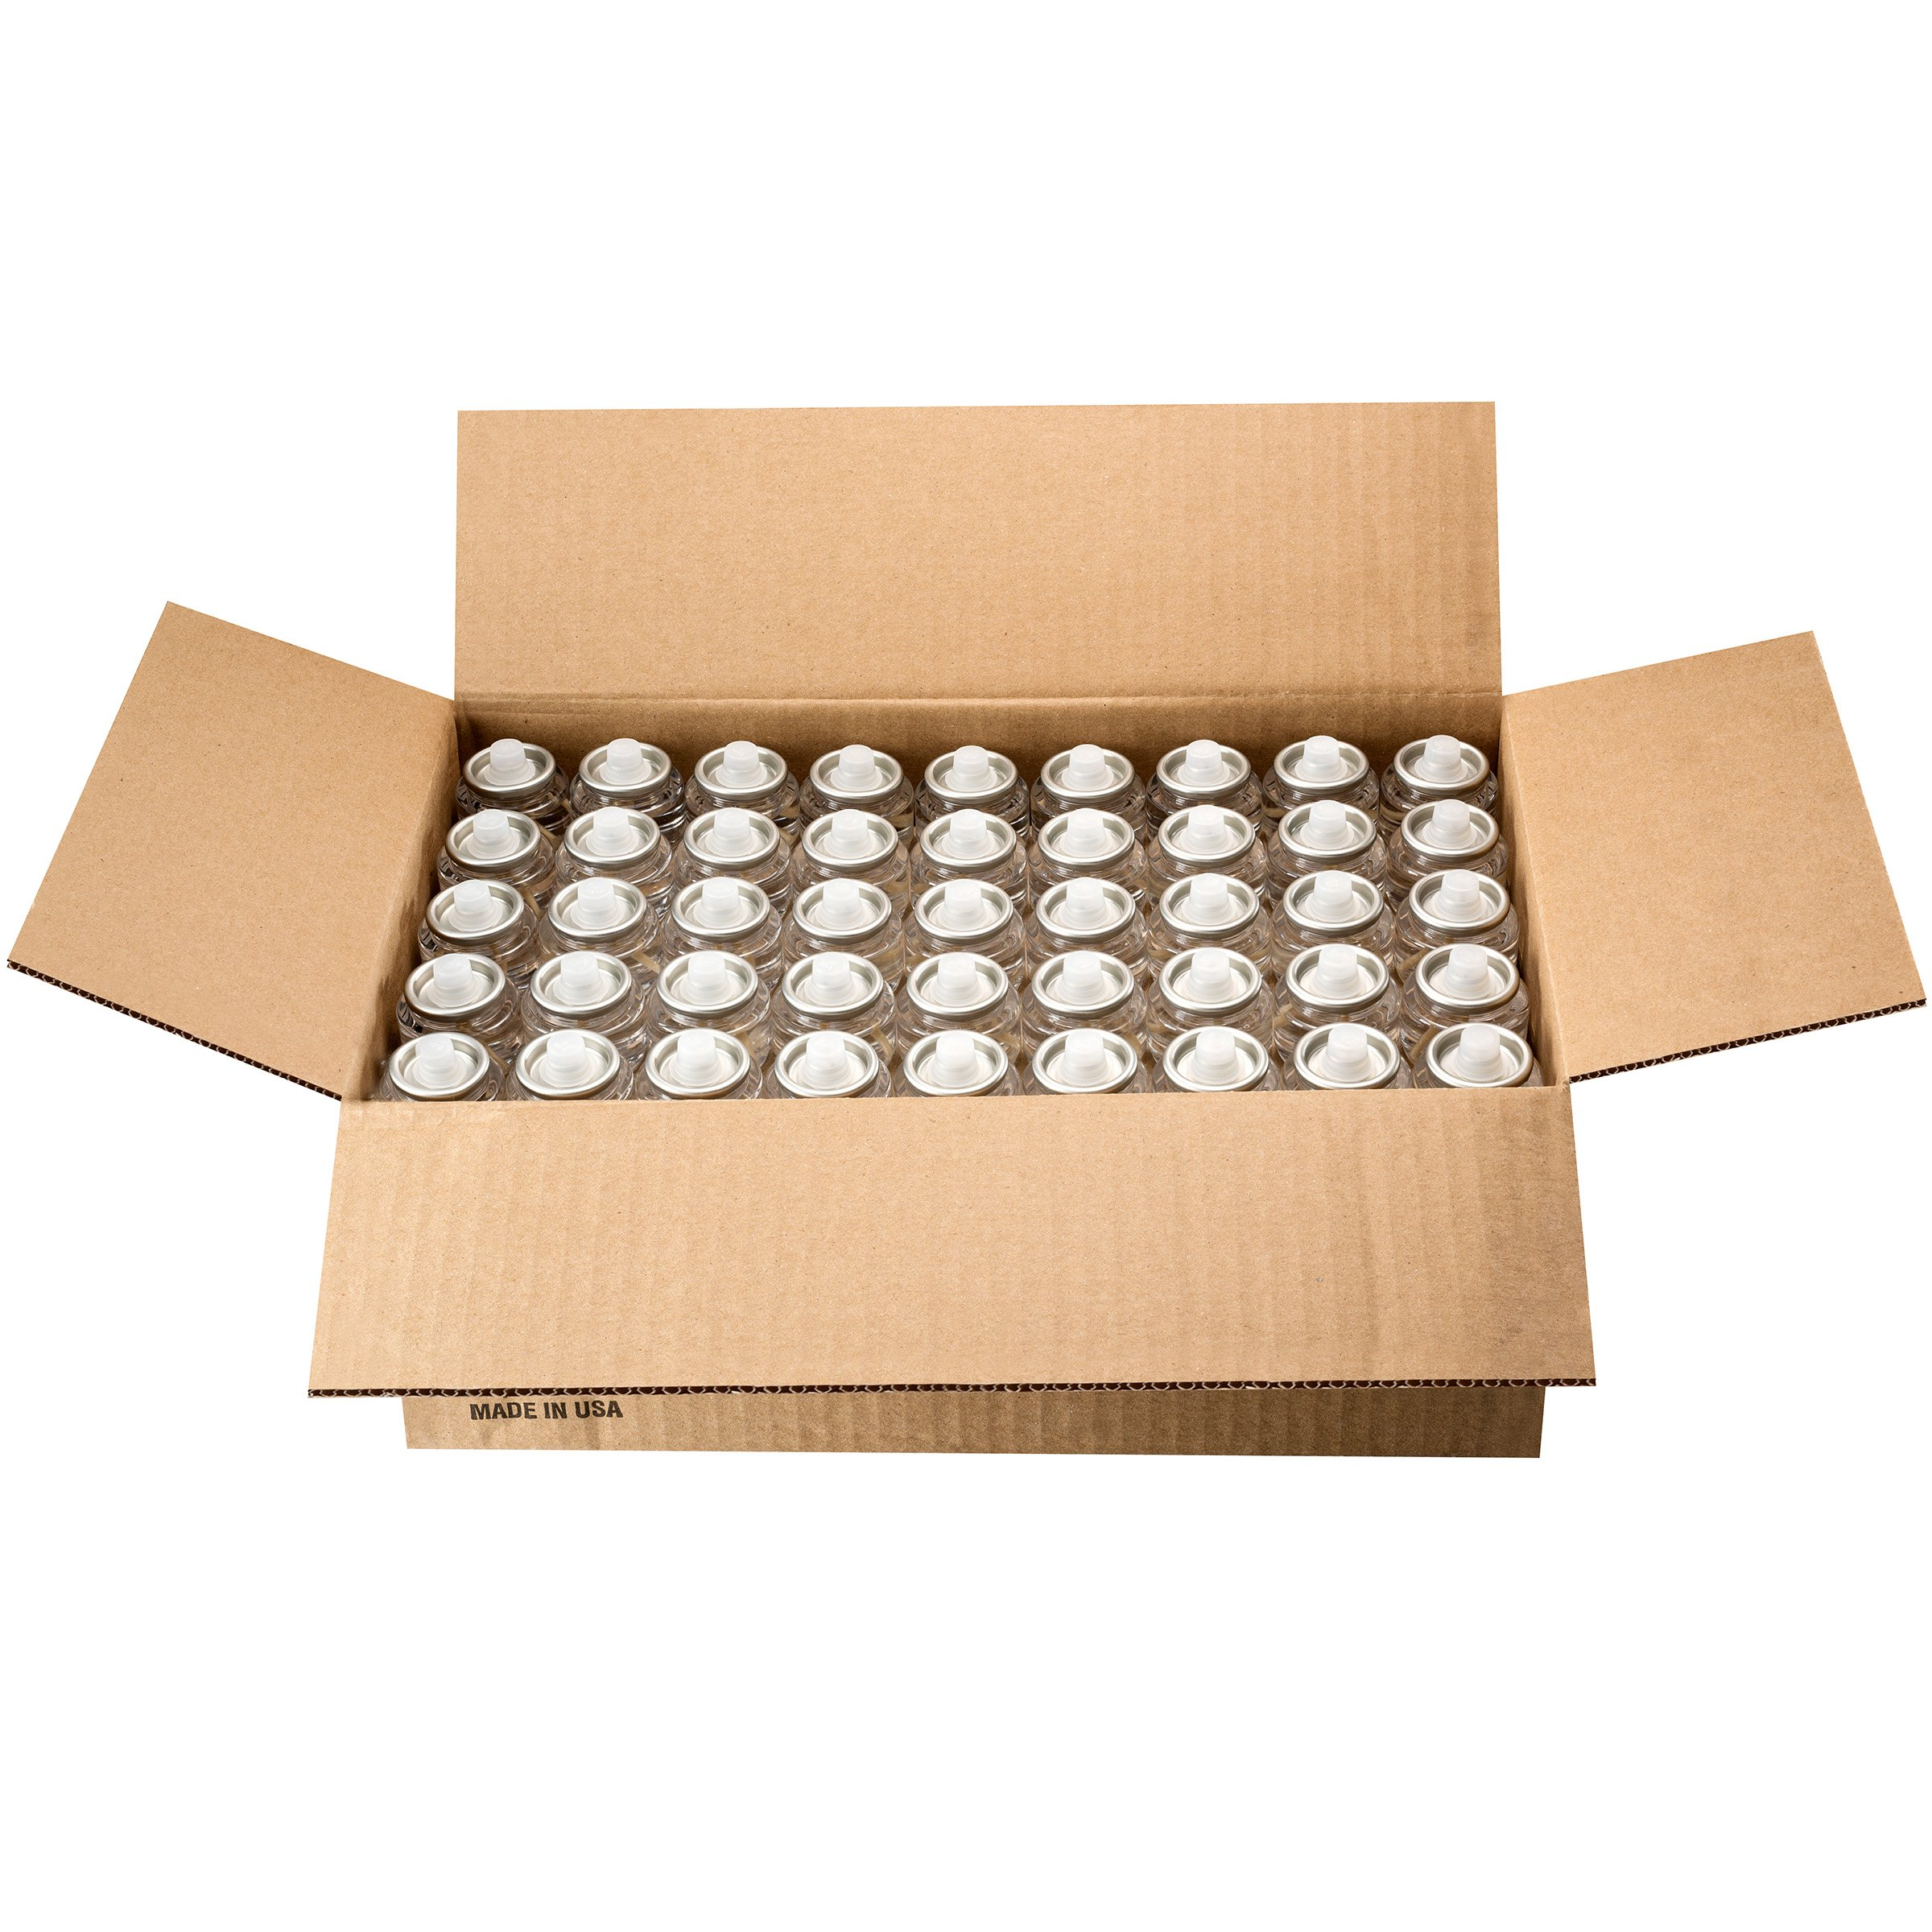 Bulk Tealight Fuel Cells Liquid Paraffin Oil Candles - Disposable - 8 Hour Burn (180 Pack) Made in USA by Candle Charisma